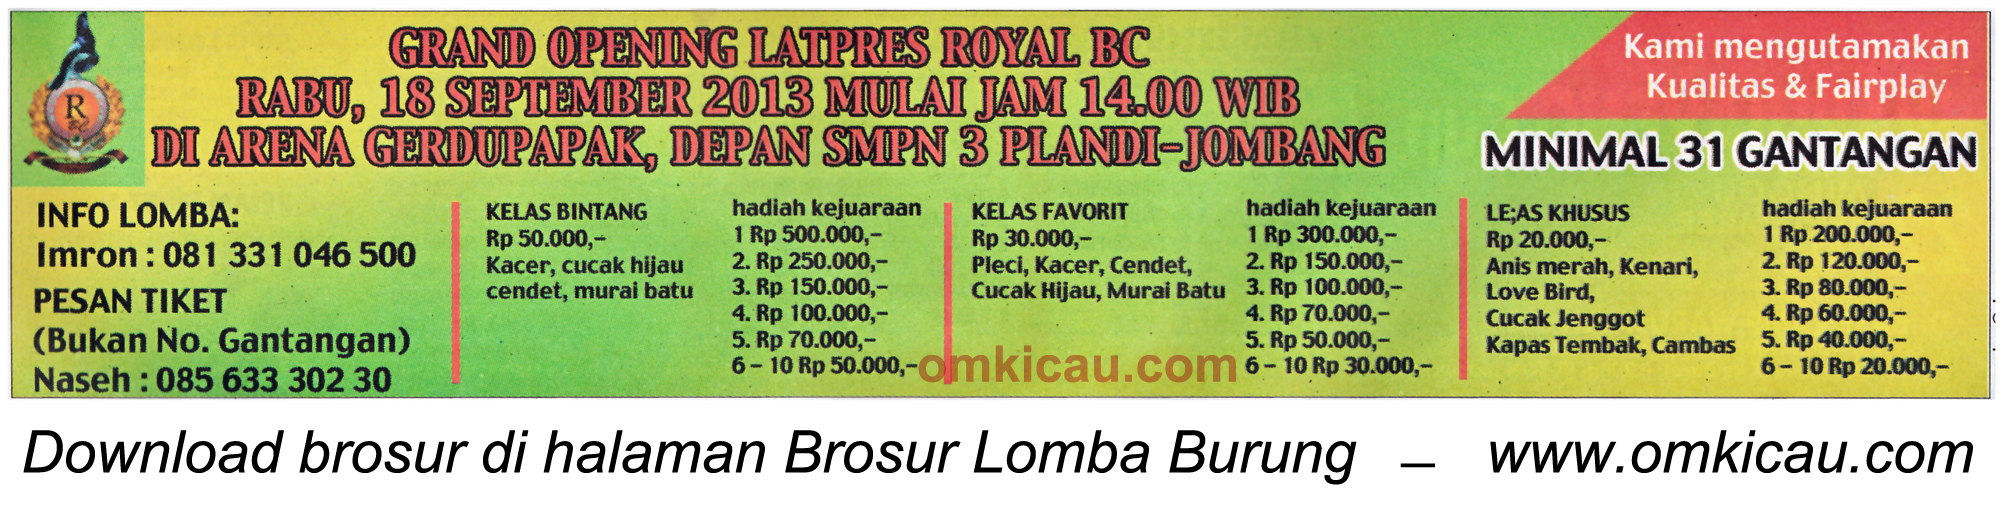 Brosur Grand Opening Latpres Royal BC Jombang 18 Sept 2013